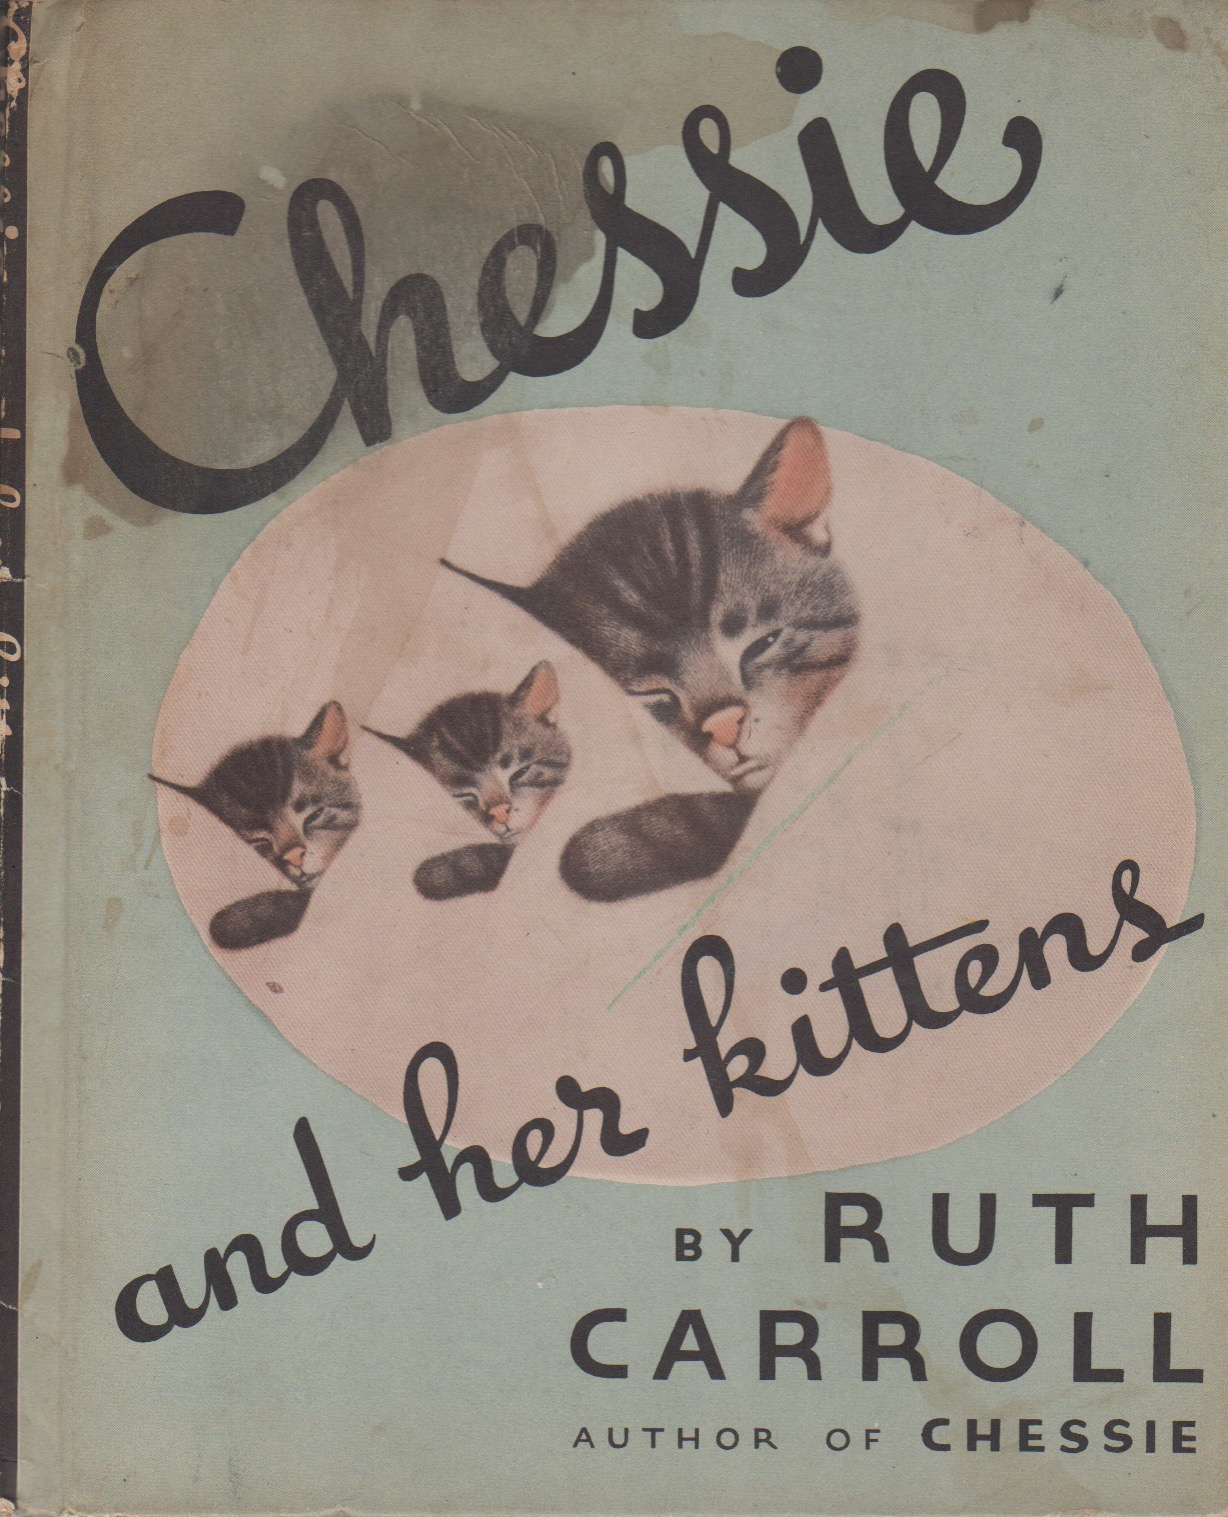 CHESSIE AND HER KITTENS. author, presumed.